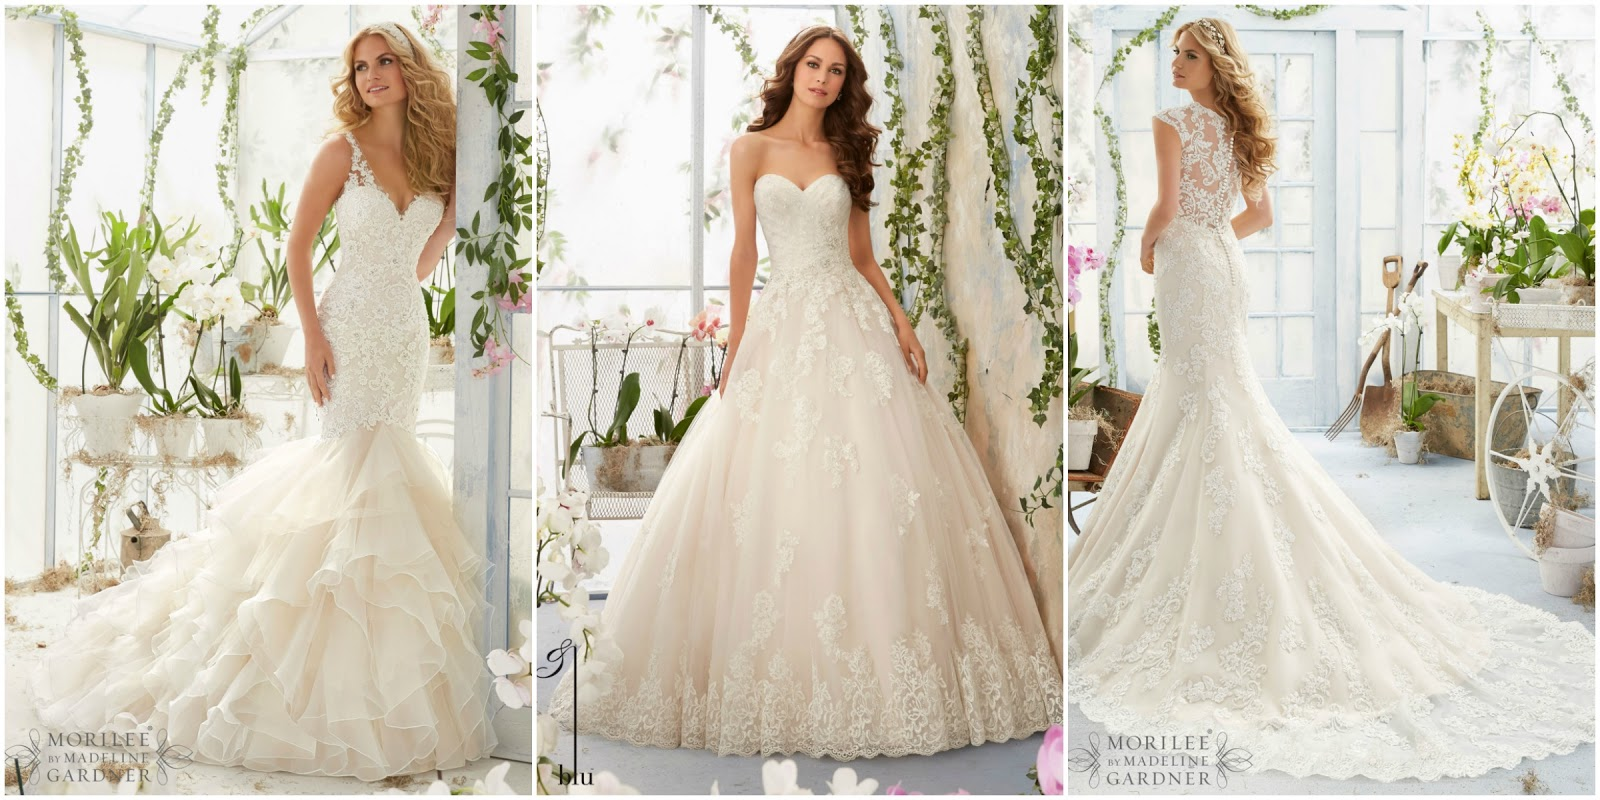 Wedding Dresses Shop Online Miami - Wedding Dresses In Redlands